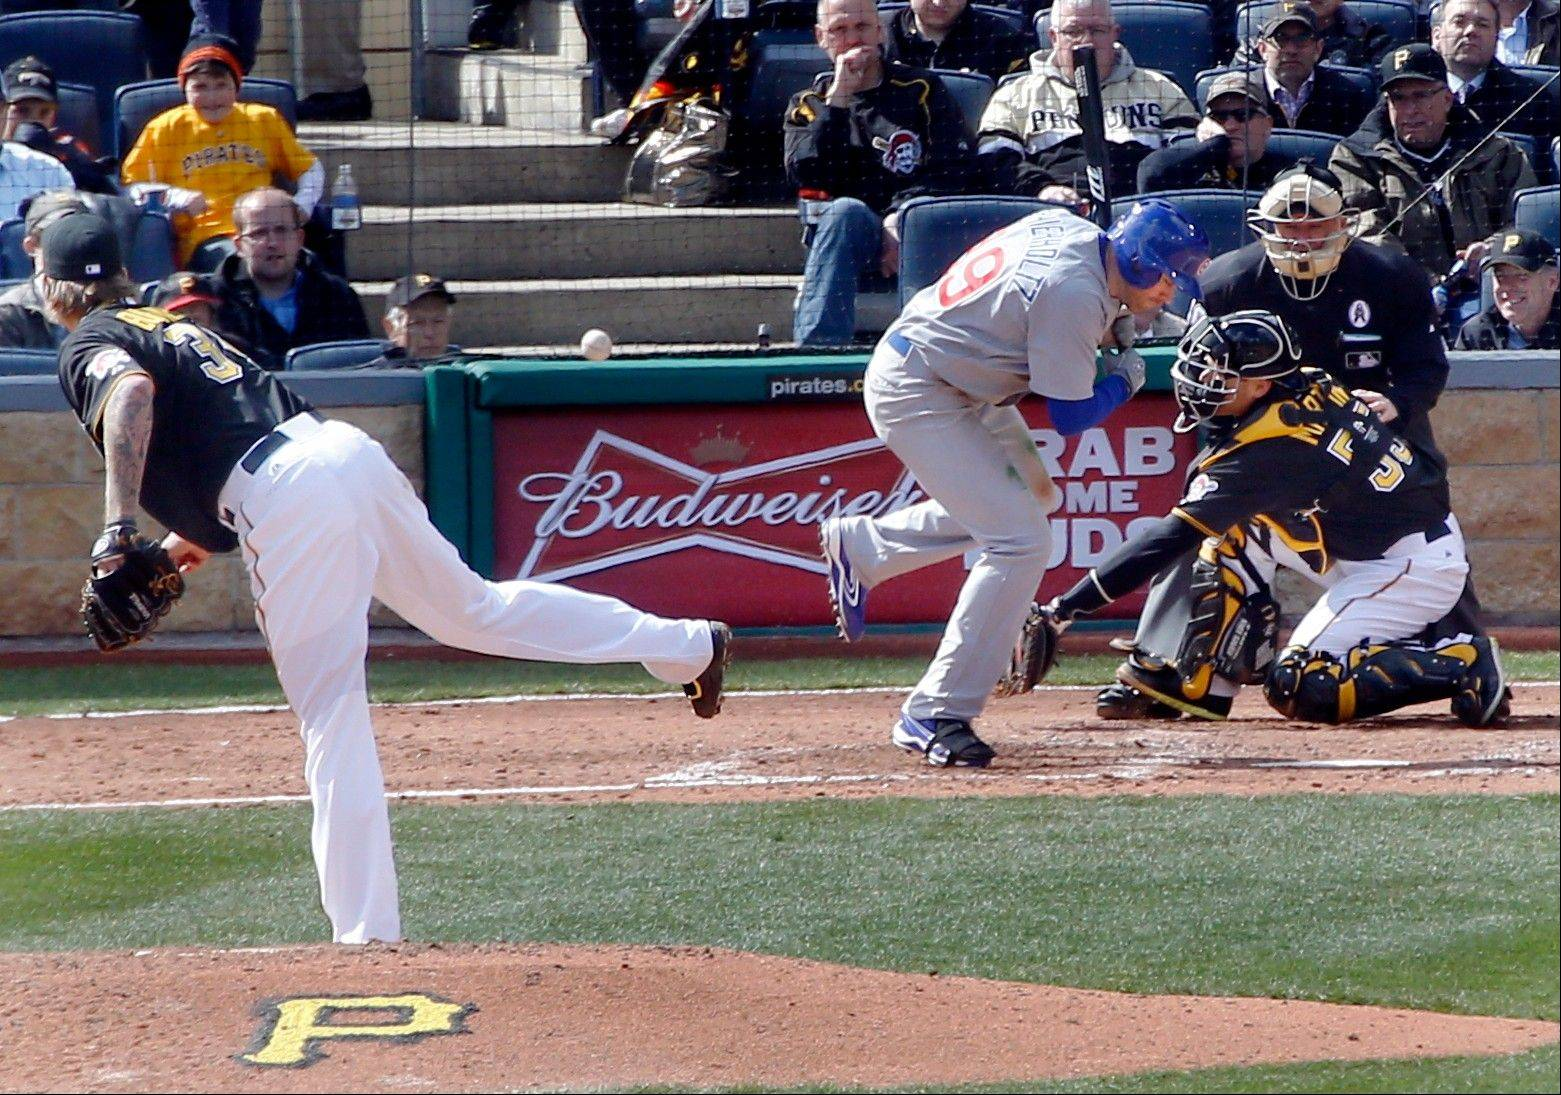 Chicago Cubs' Nate Schierholtz, center, skips after being hit by a pitch by Pittsburgh Pirates starting pitcher A.J. Burnett, left, in the sixth inning .